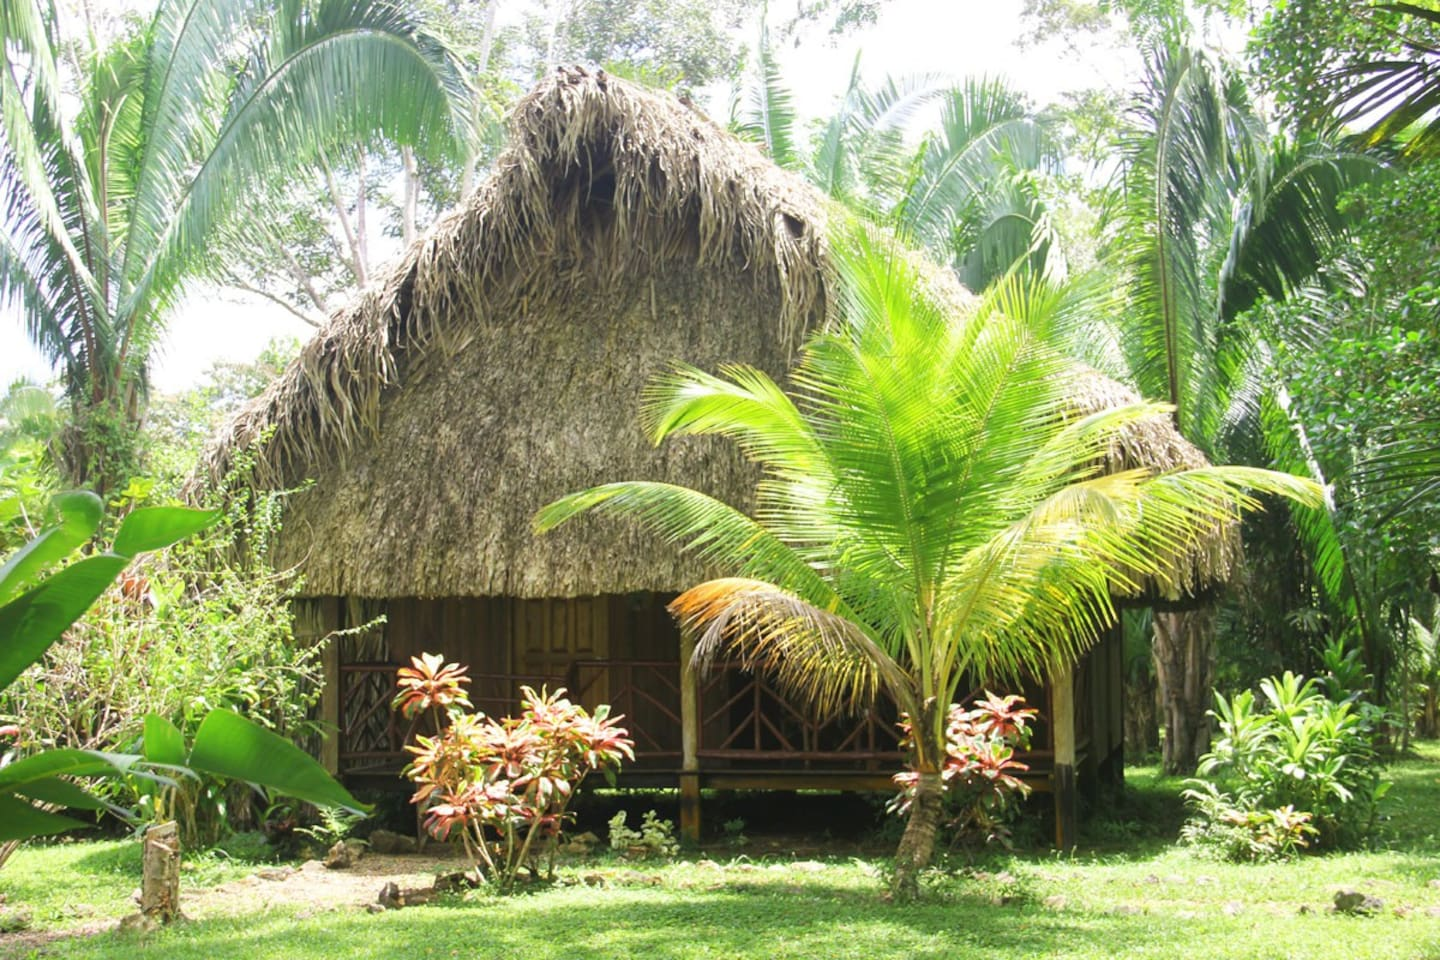 Villa Parrot with mayan-style thatch roof